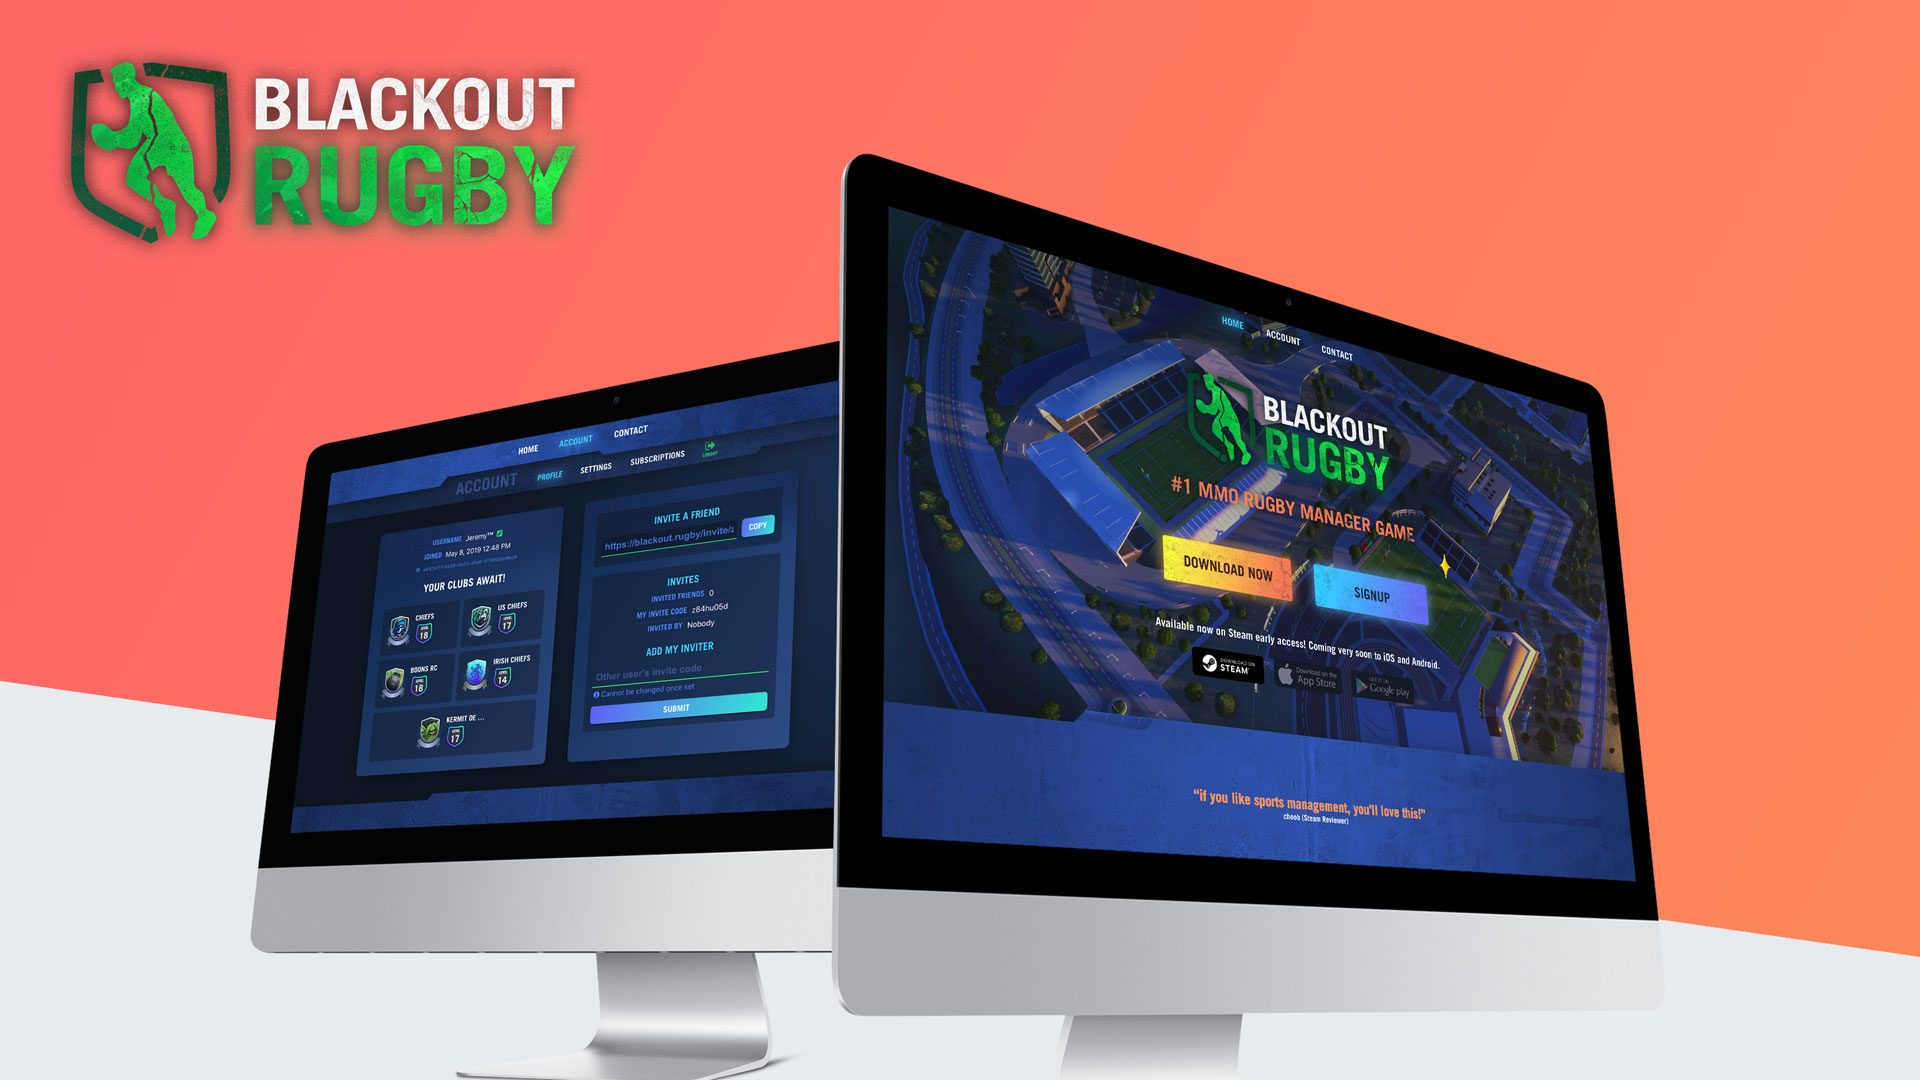 New website released for blackout rugby